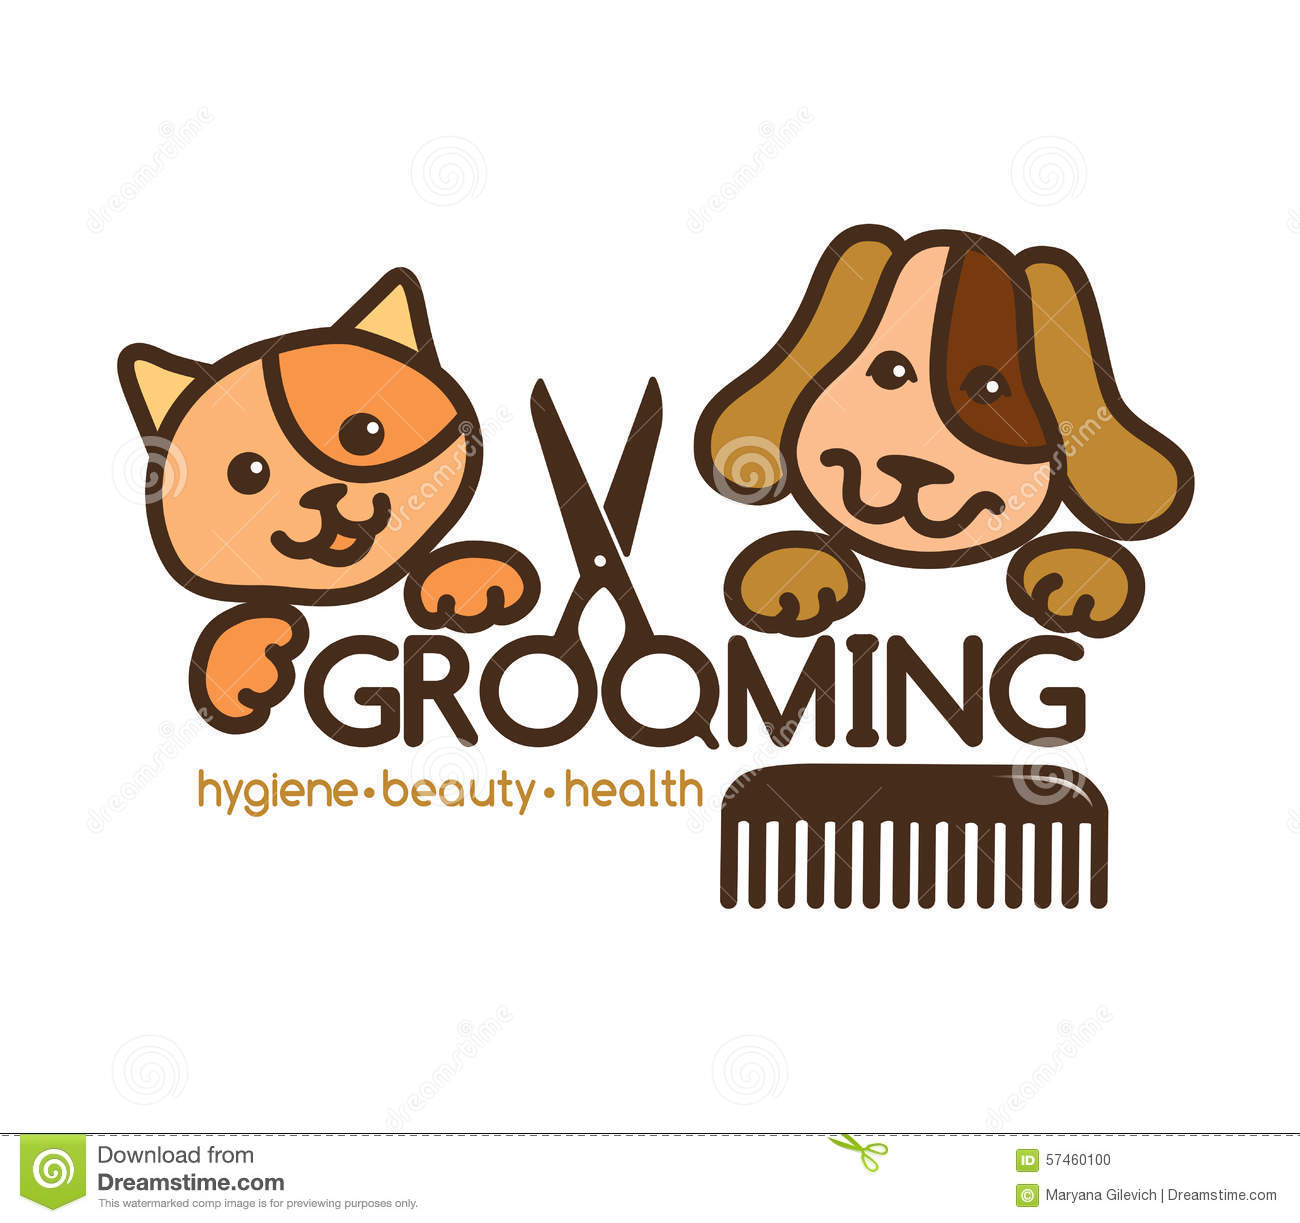 How to Start Your Own Pet Grooming Business in the Philippines